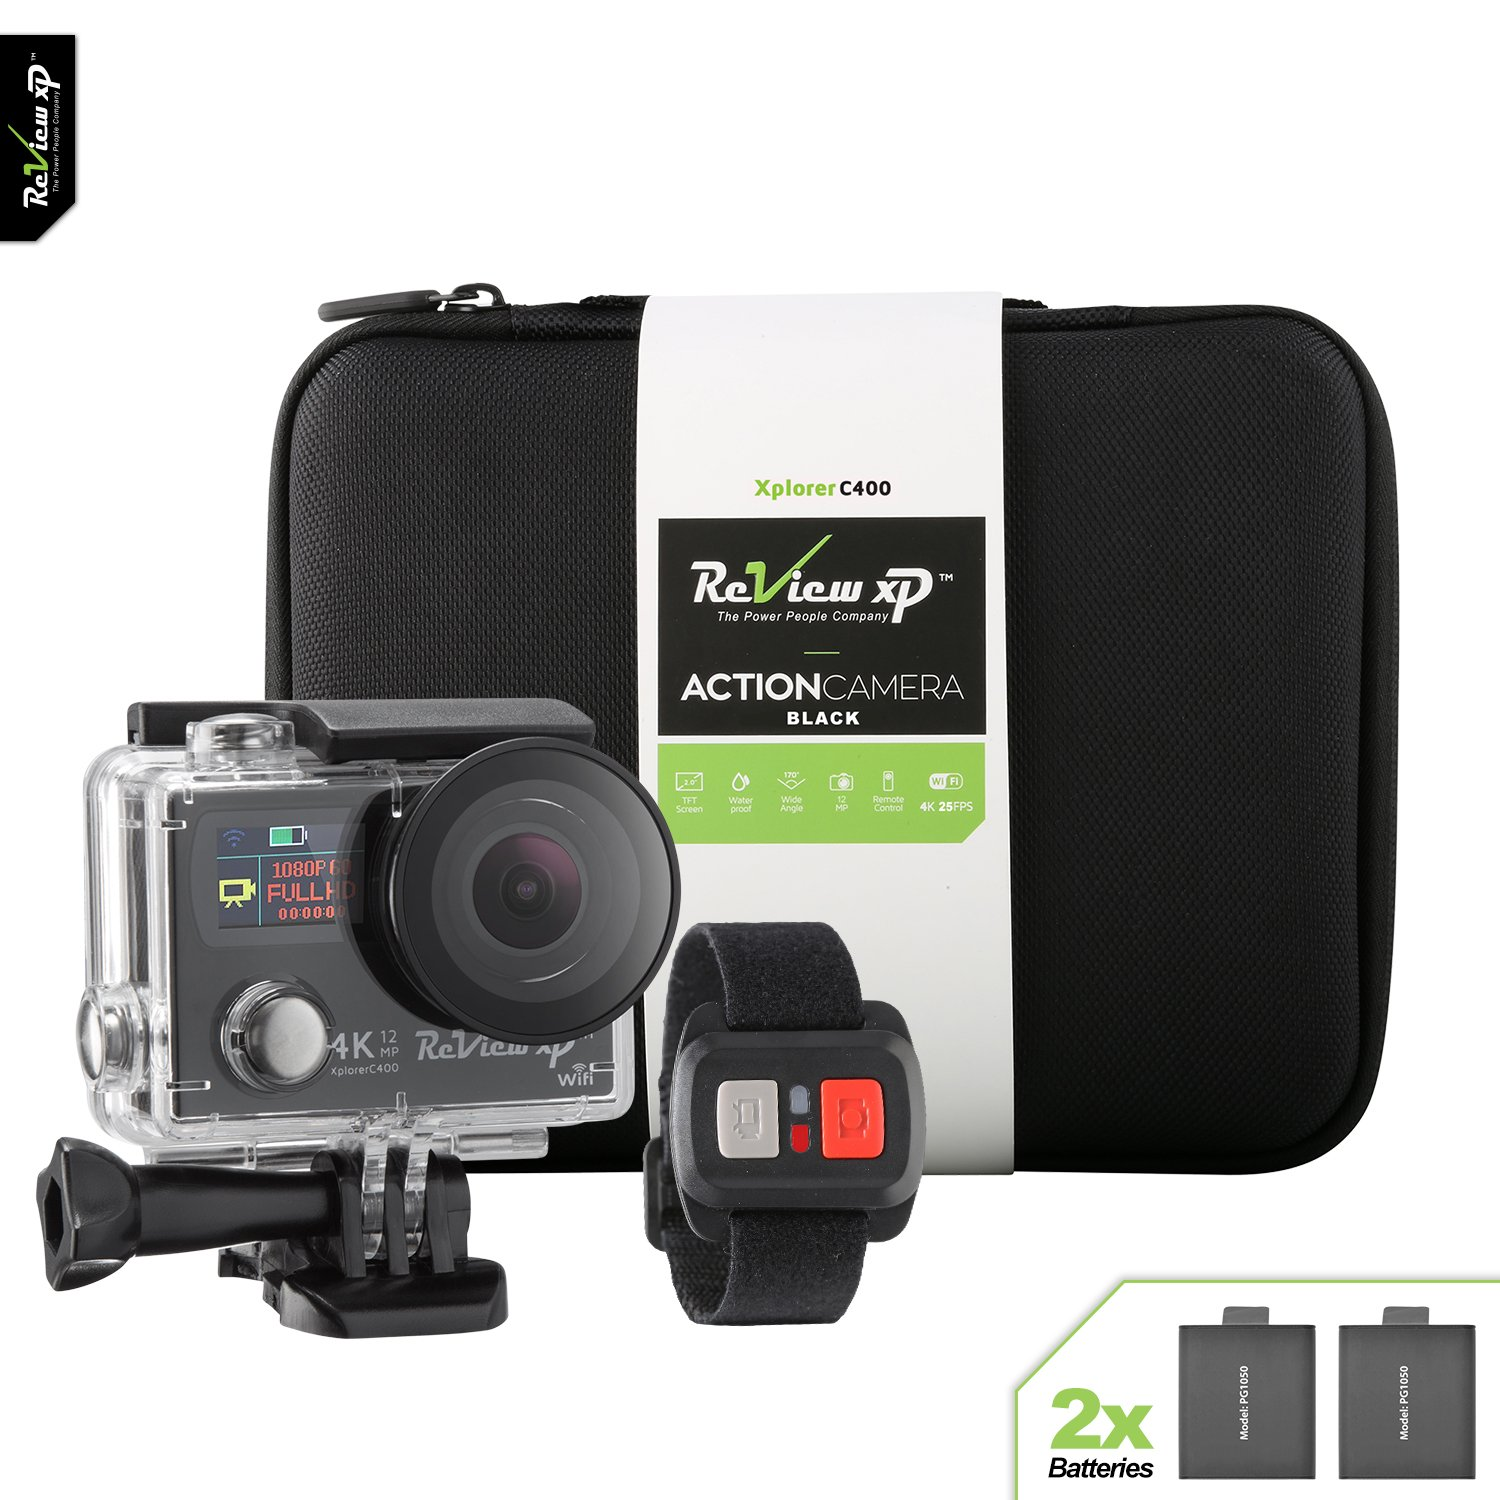 Review XP 4K Action Camera Wi-Fi Waterproof 12MP 25fps HD Sports Video Underwater Camcorder 170° Angle Dual Screen 2 Batteries Accessory Kit Carrying Case Remote Control – Black